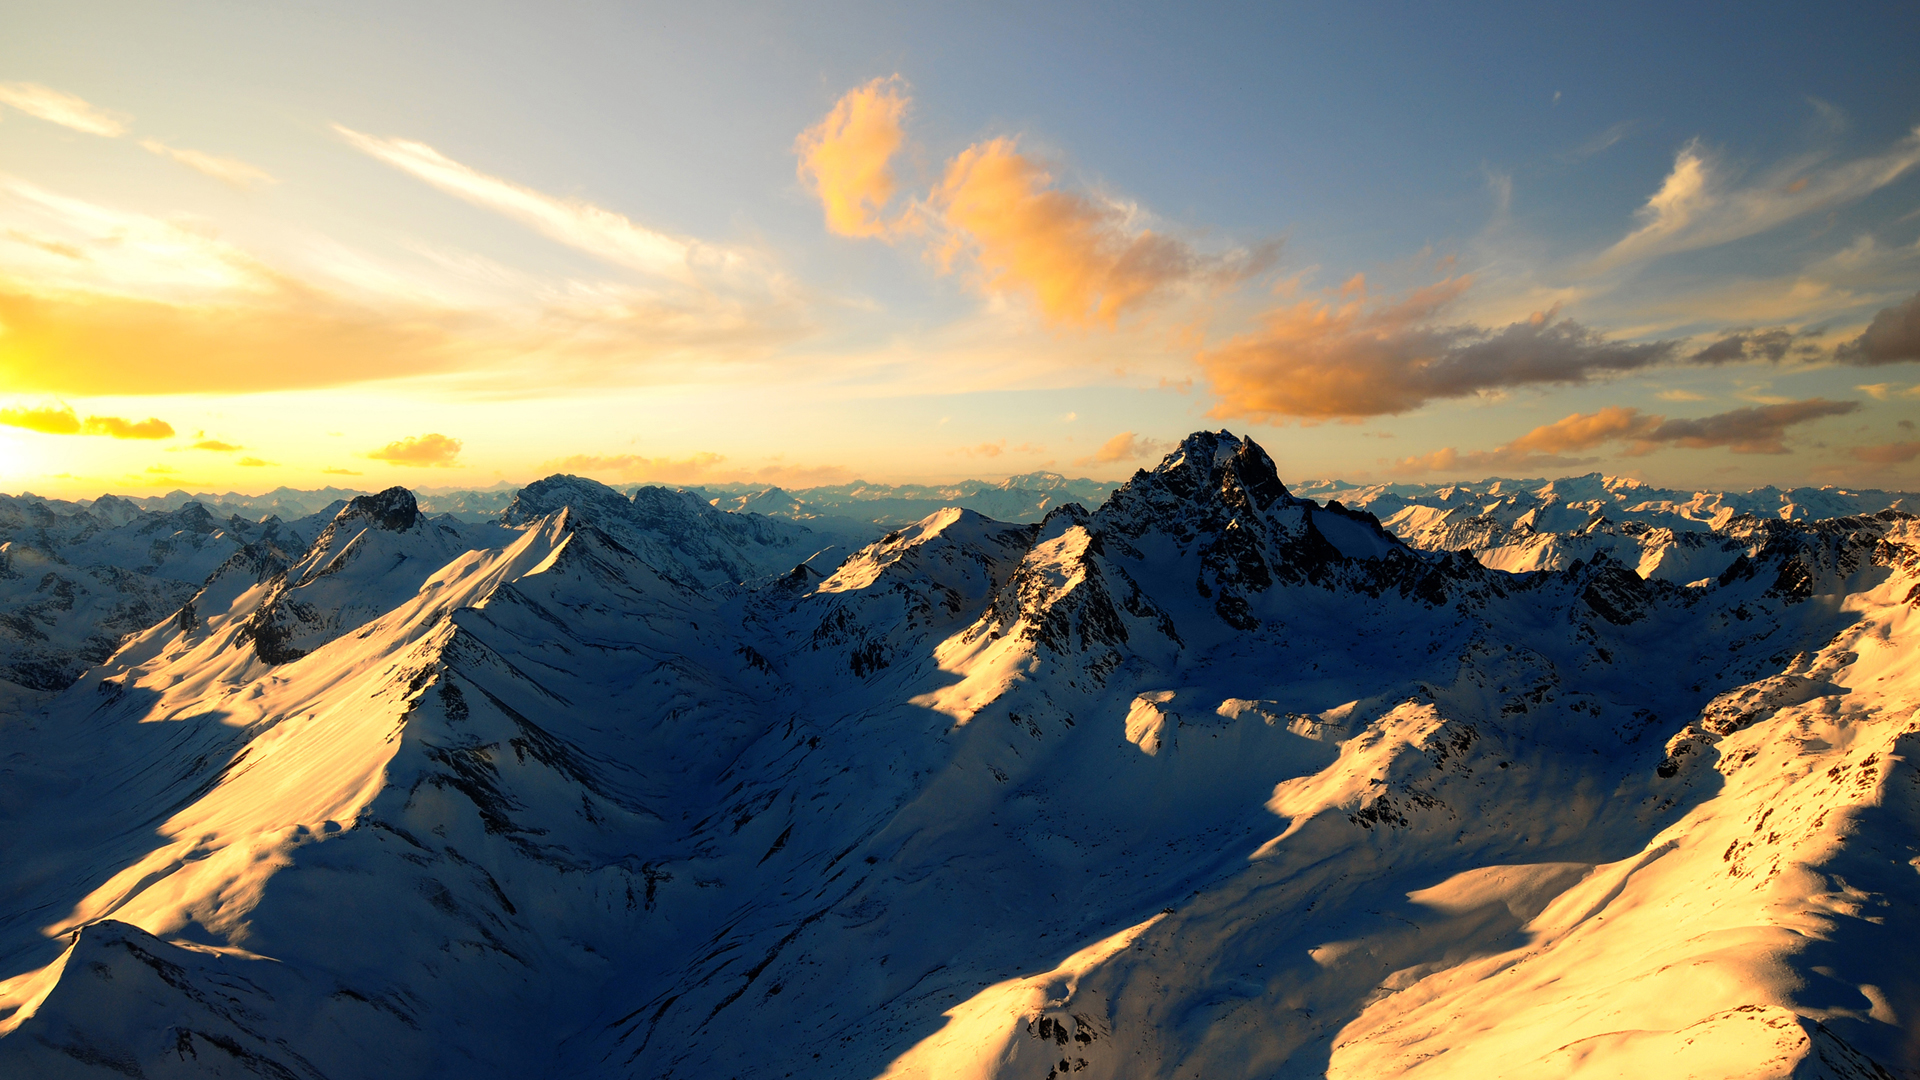 Cool Mountain Range Wallpaper 14162